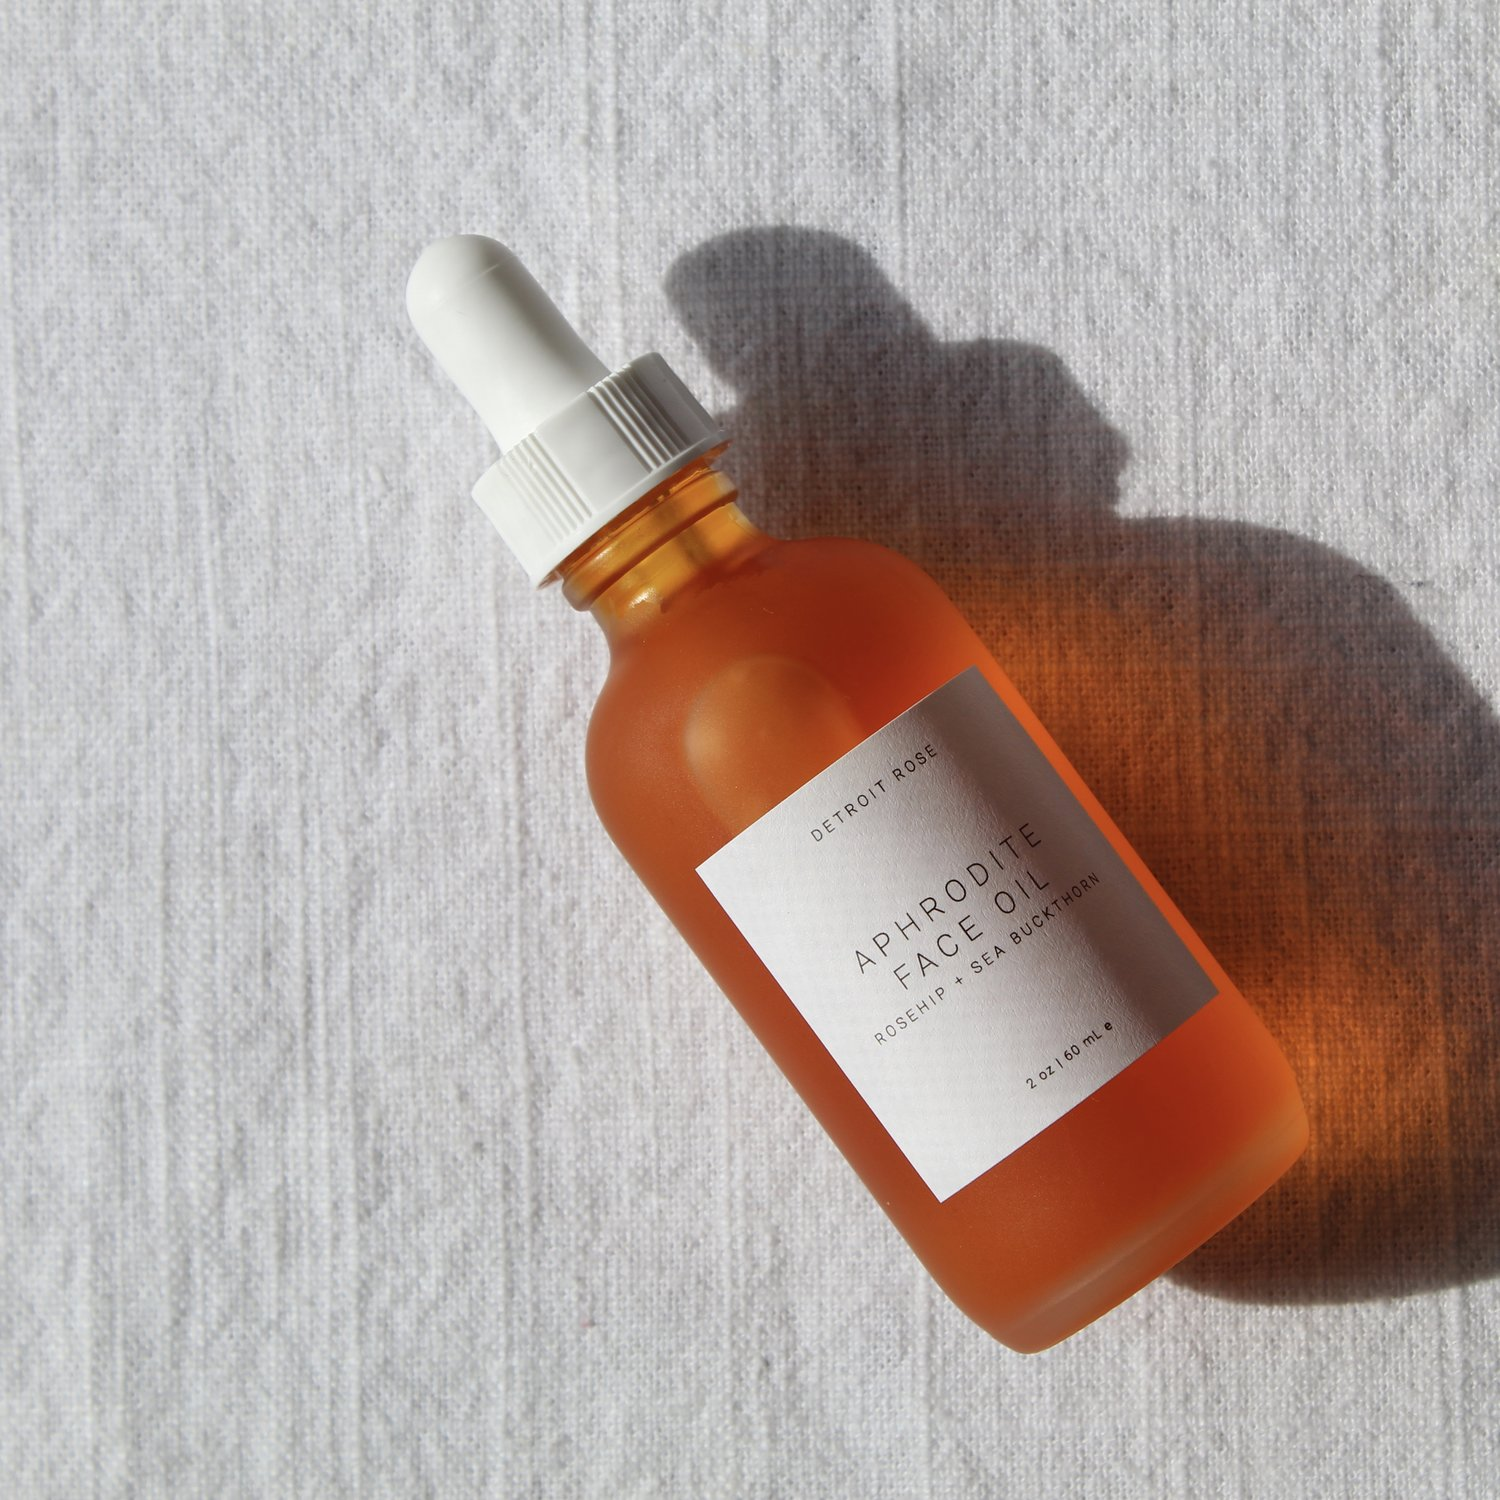 Share your love of natural beauty products and self care with this face oil from  Detroit Rose . Maybe even have an at-home spa day with your mom!